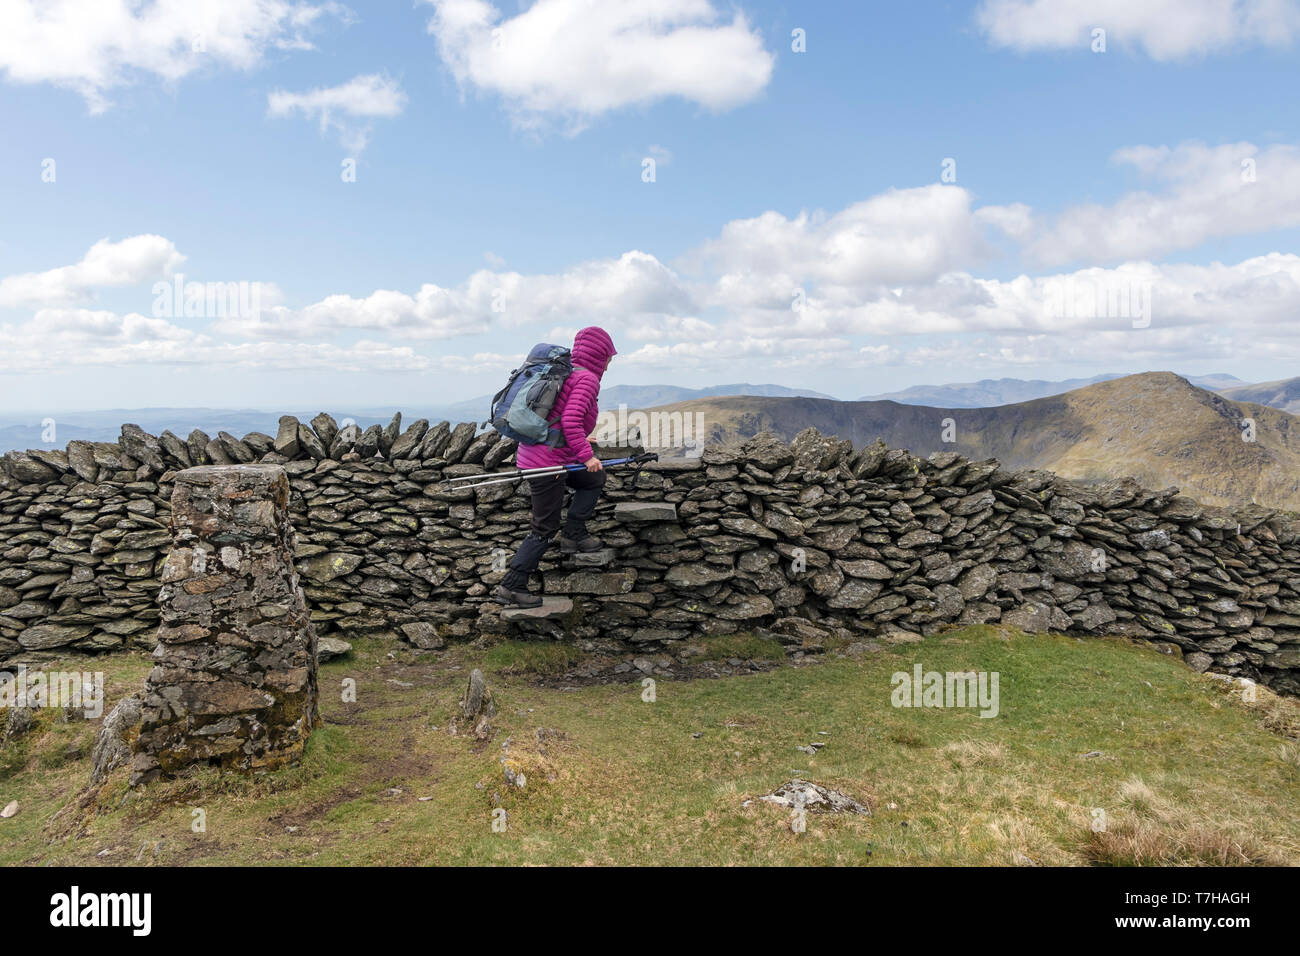 Walker Climbing the Stile Next to the Trig Point on the Summit of Kentmere Pike with the View West Lake District, Cumbria, UK Stock Photo